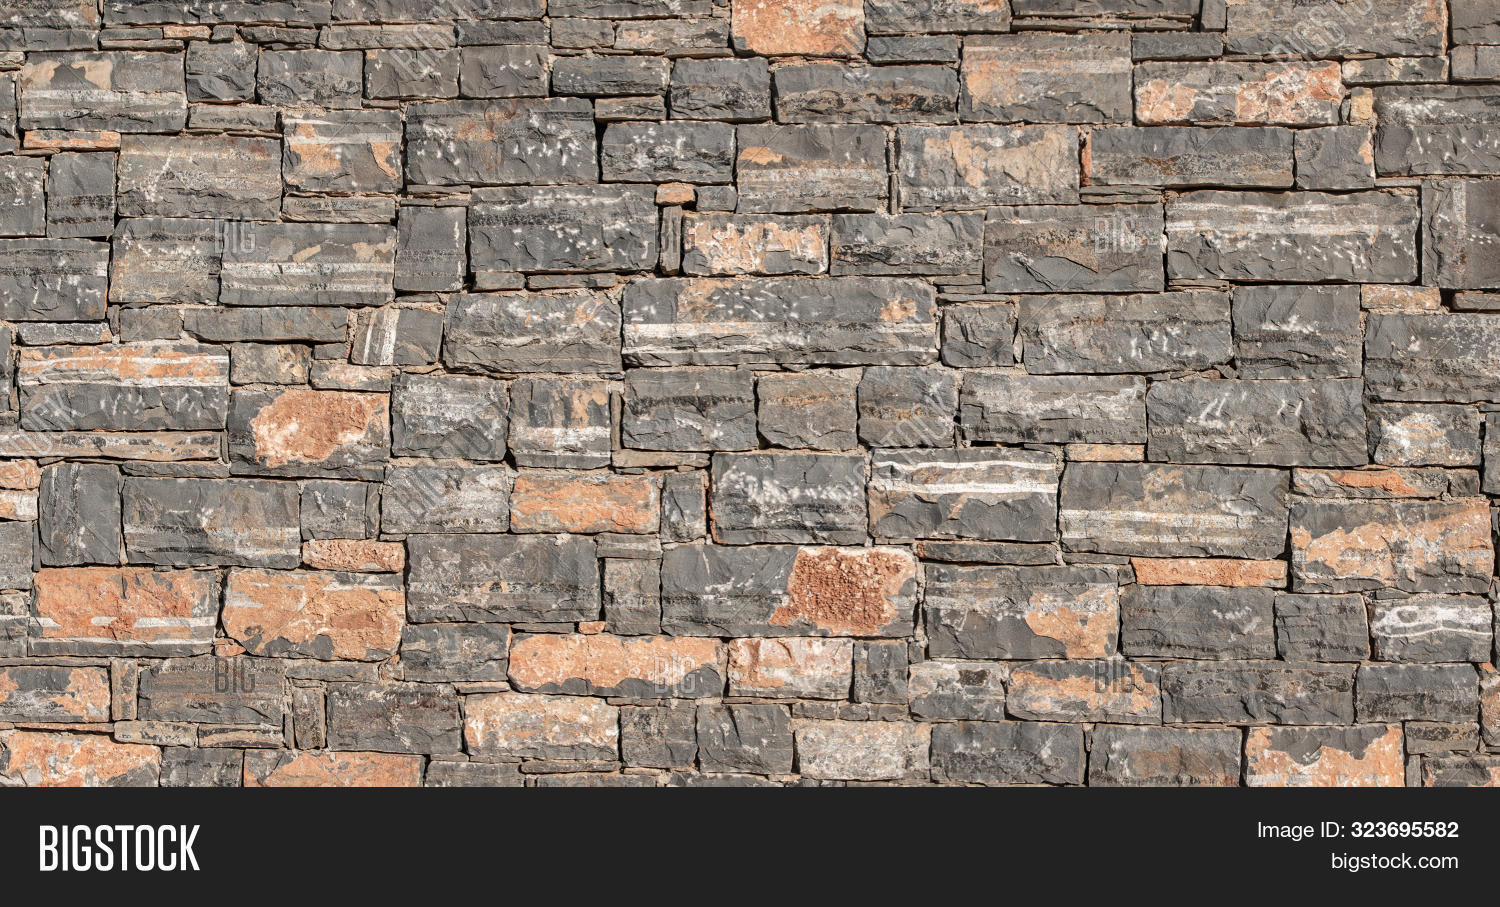 abstract,aged,ancient,antique,architecture,backdrop,background,block,brick,brickwork,broken,brown,built,cement,concrete,construction,design,dirty,dry,facade,gray,greece,greek,history,house,material,modern,nature,old,pattern,retro,rock,rough,solid,stone,stonewall,structure,surface,texture,textured,tile,urban,vintage,wall,wallpaper,white